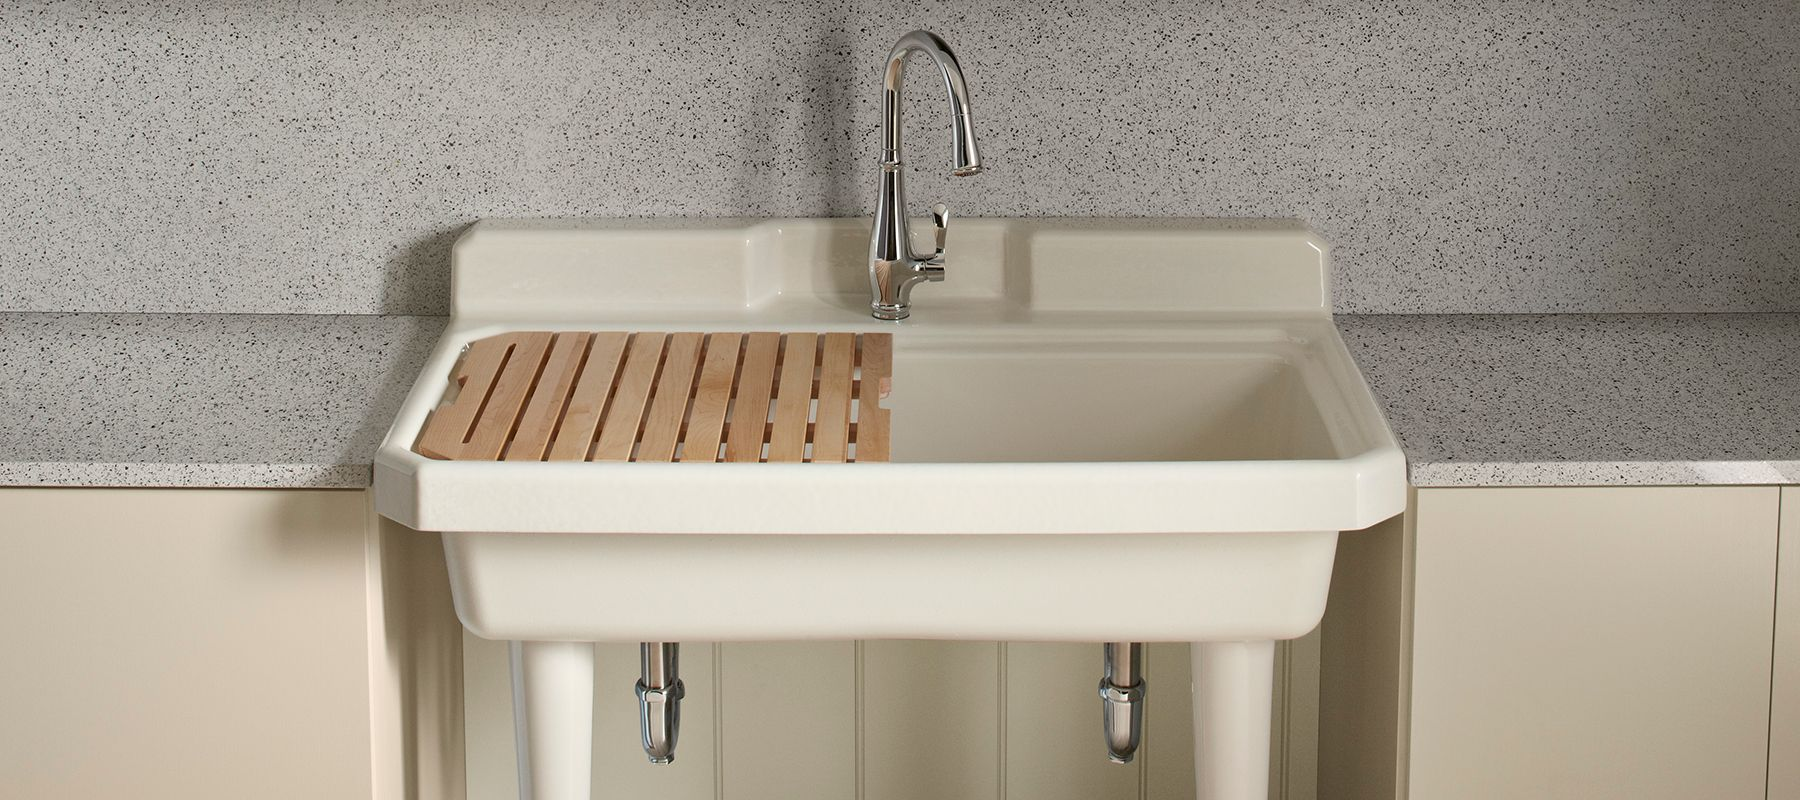 Utility Sink With Countertop.Utility Sinks Kitchen Kohler